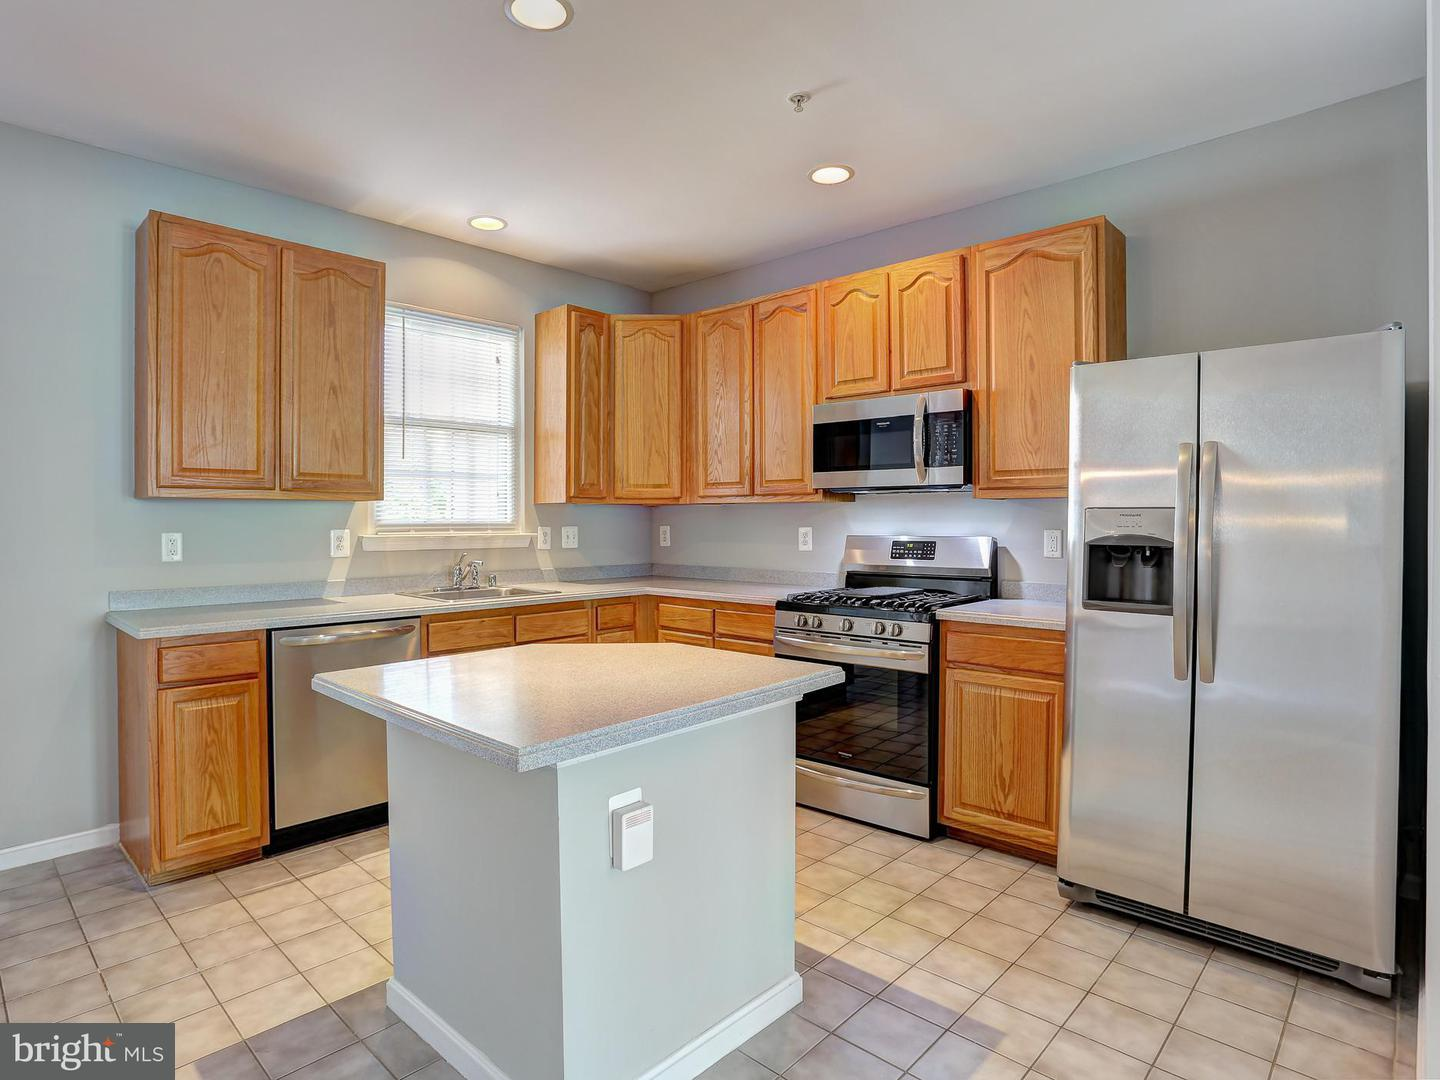 Other Residential for Rent at 2505 Cheyenne Dr Gambrills, Maryland 21054 United States